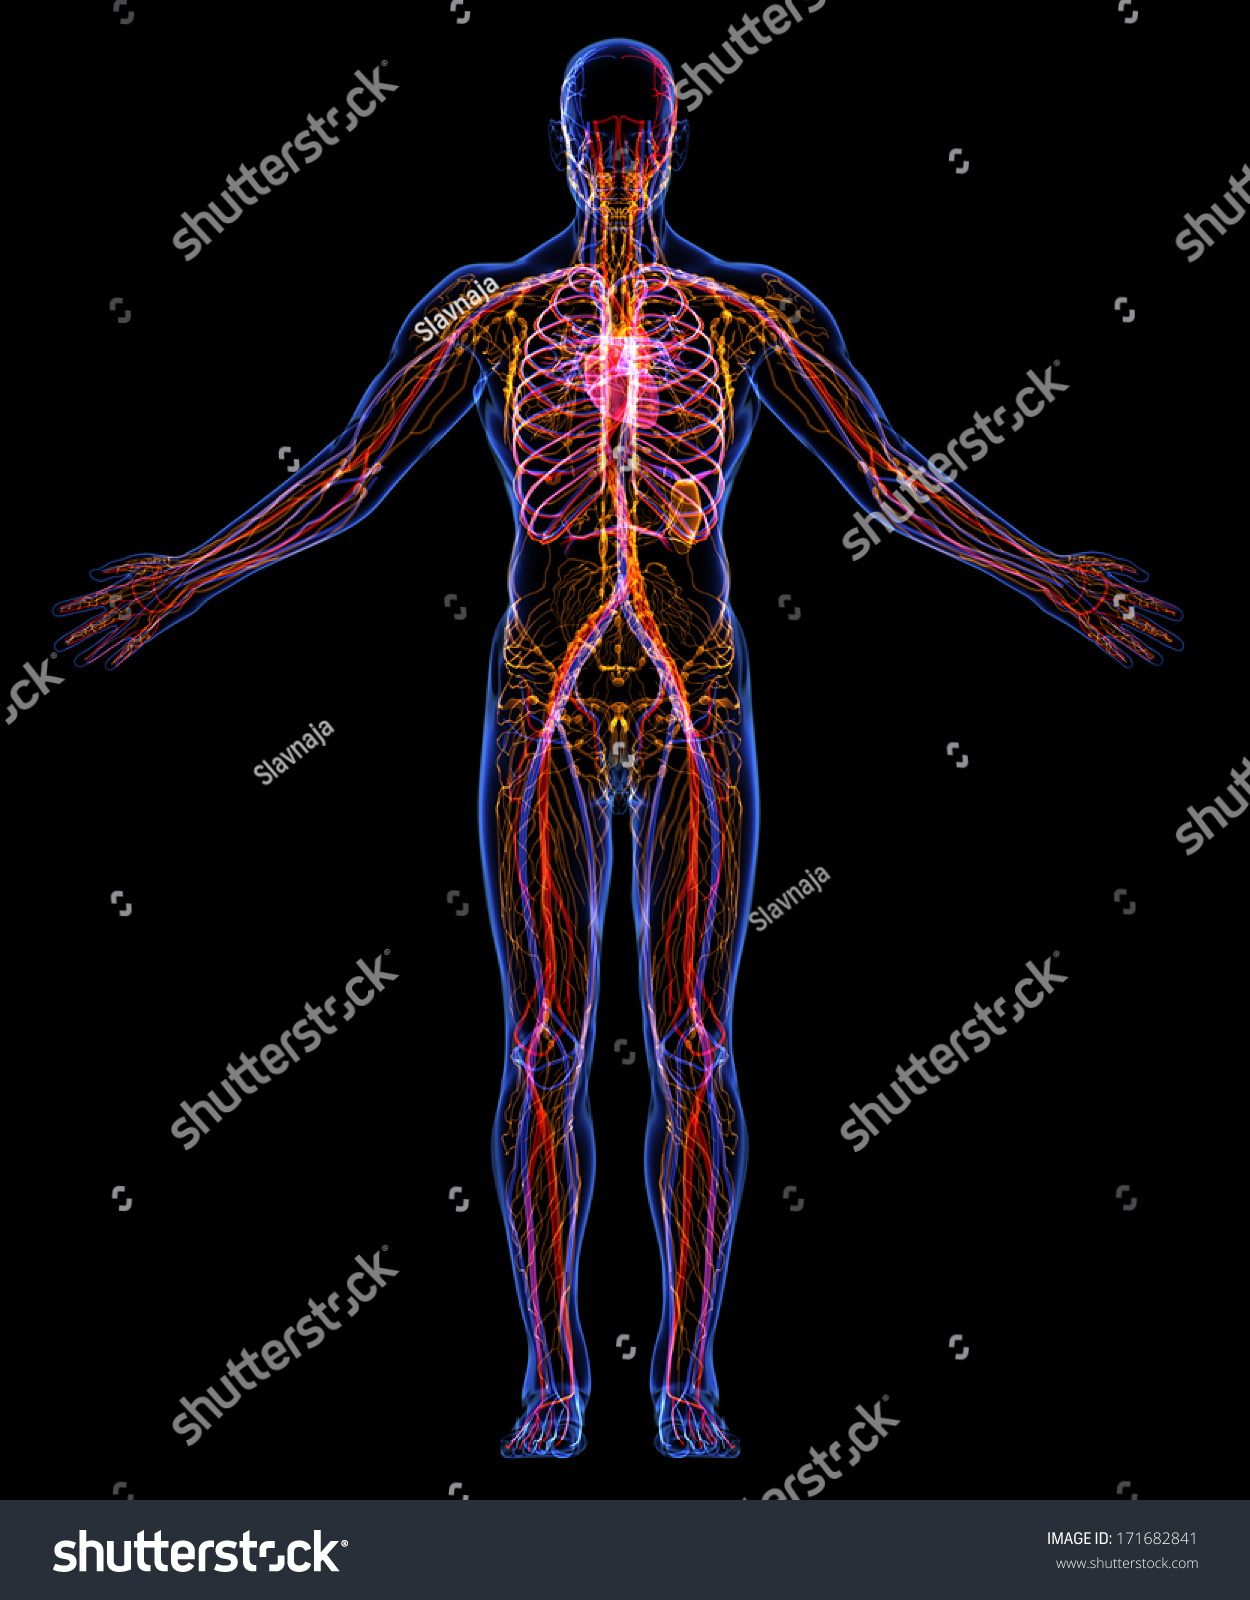 Contours Human Skin Human Lymphatic System Stock Illustration